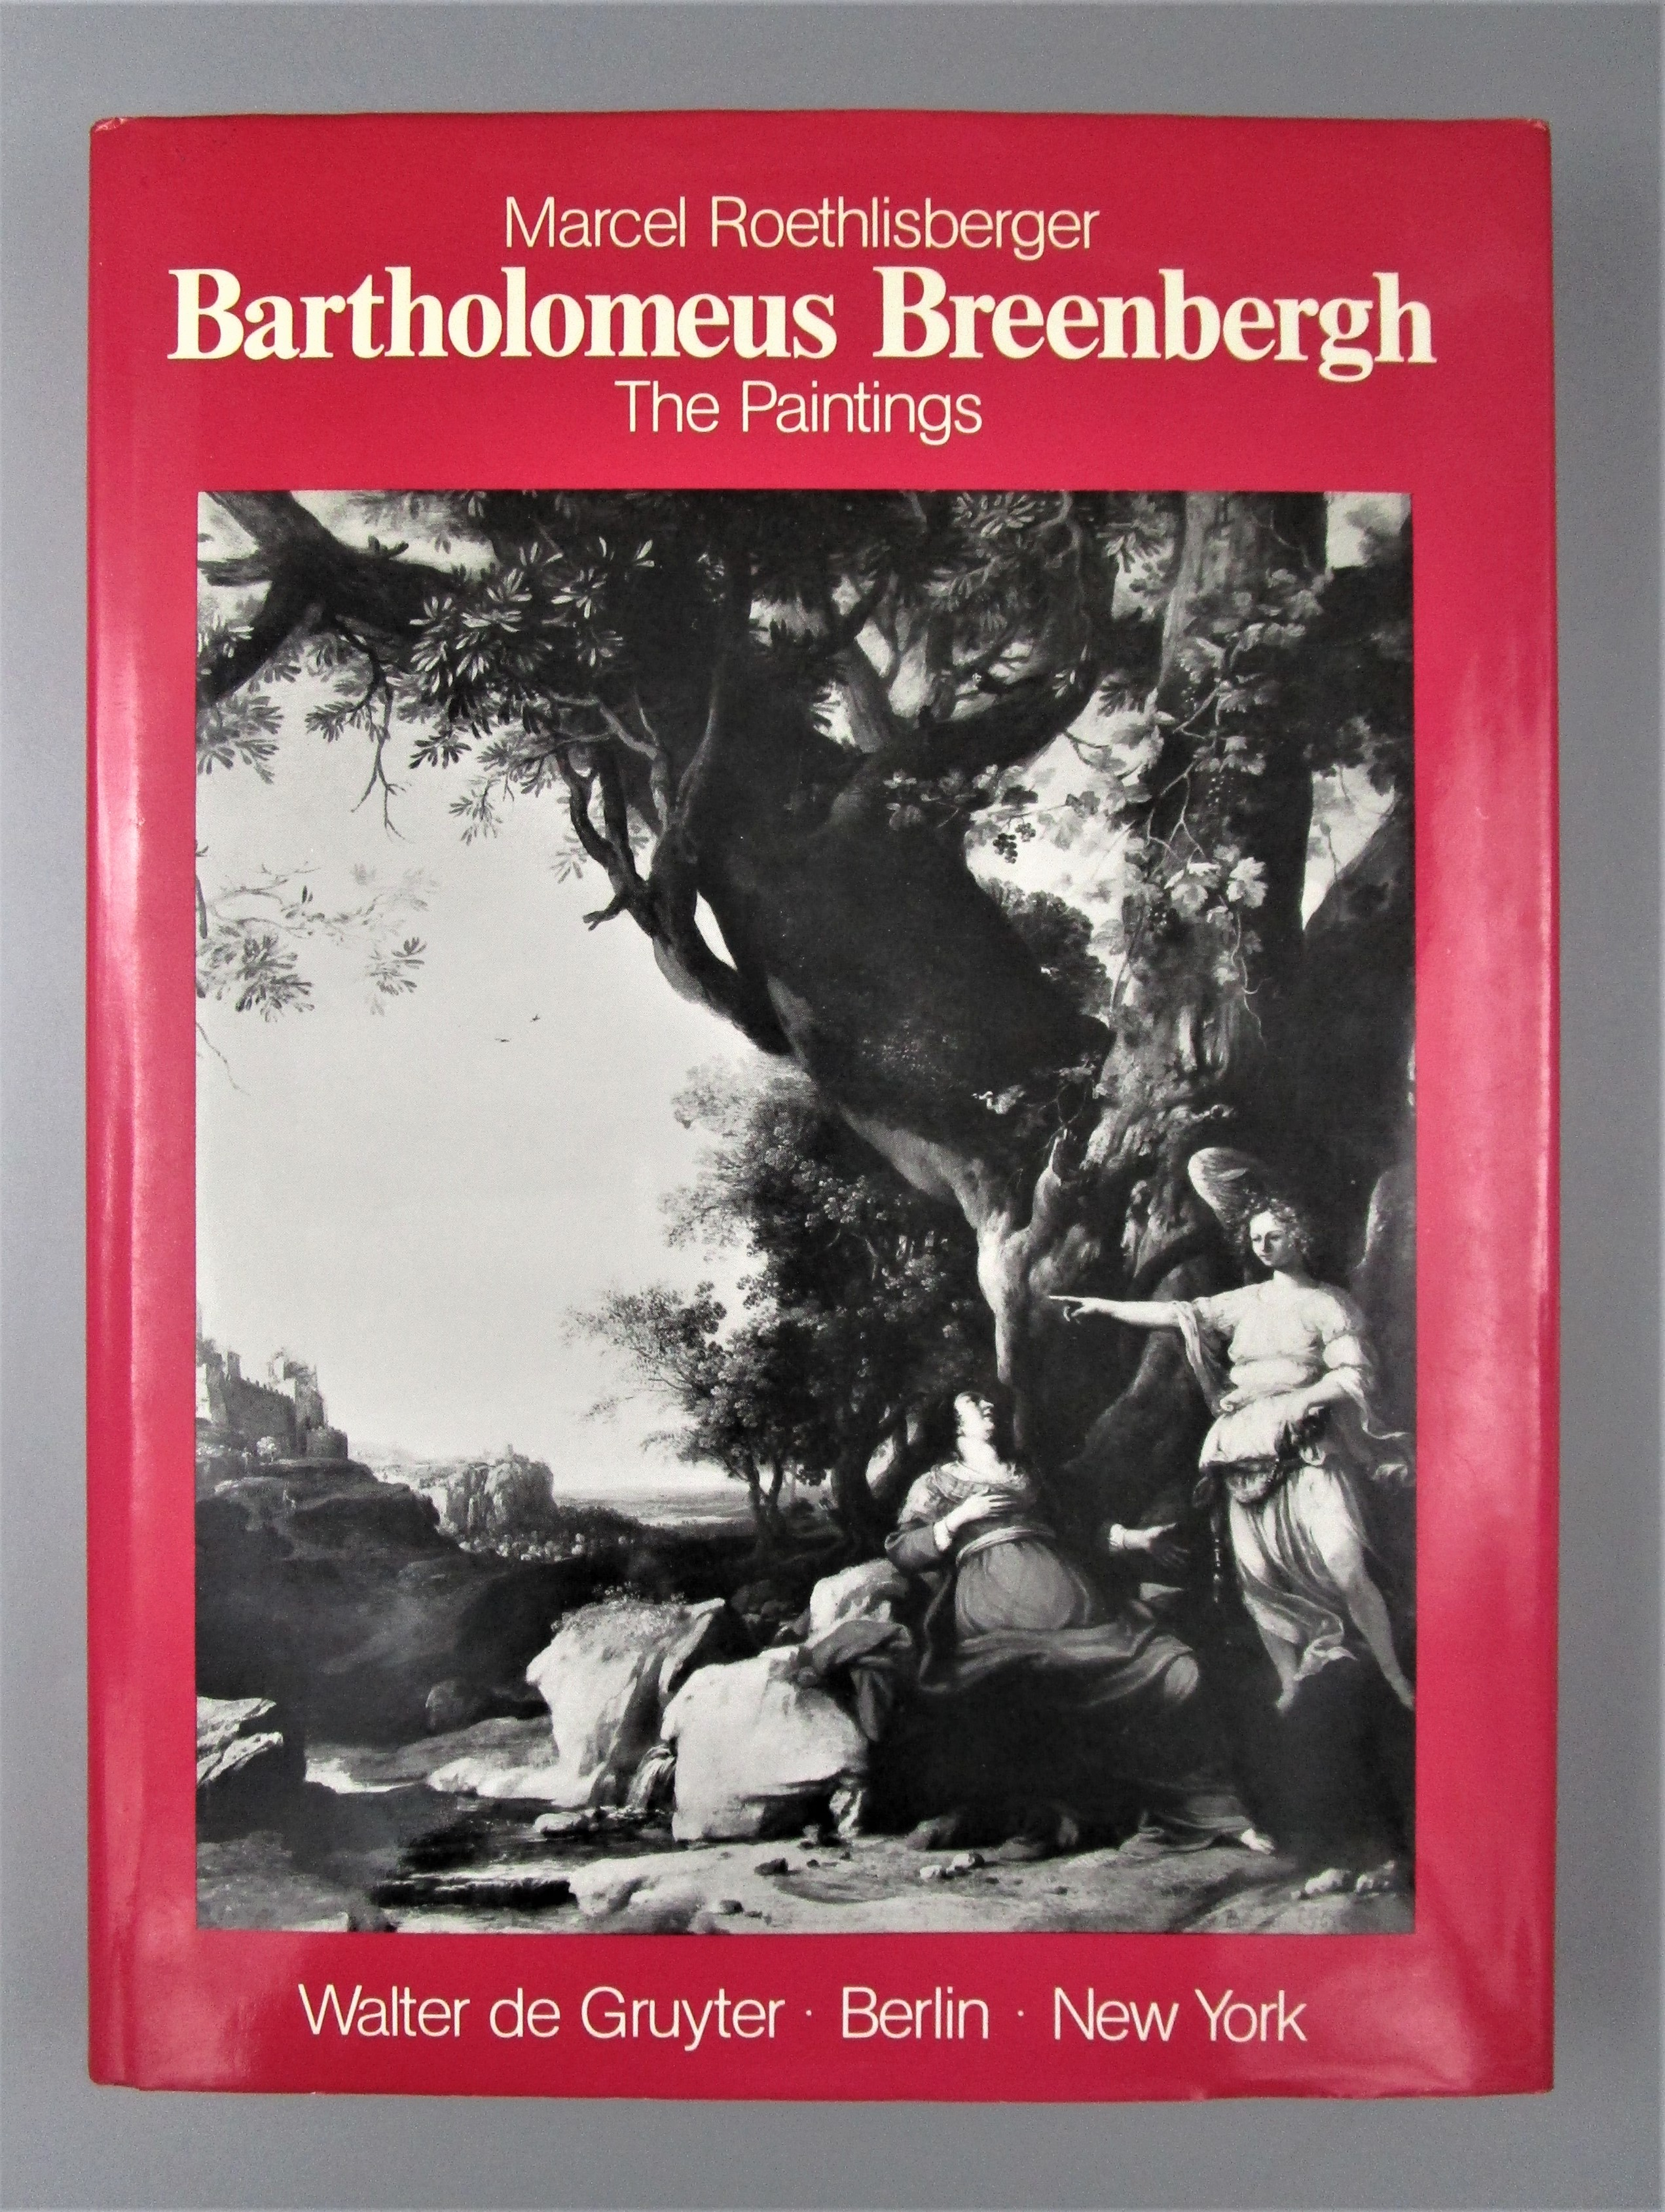 BARTHOLOMEUS BREENBERGH: THE PAINTINGS, by Marcel Roethlisberger- 1981